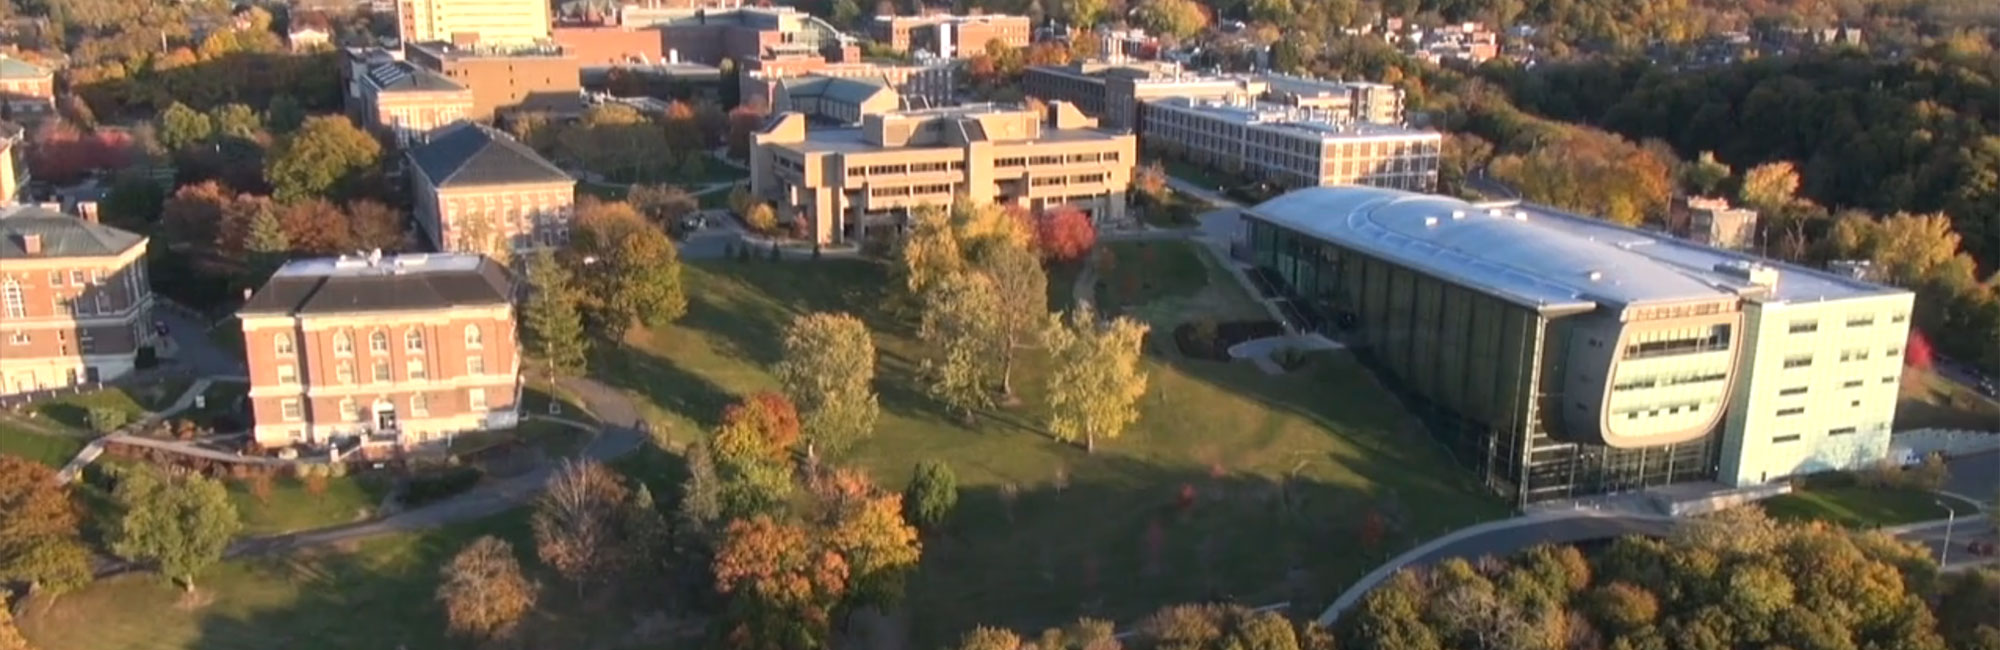 EMPAC on the RPI campus from a drone